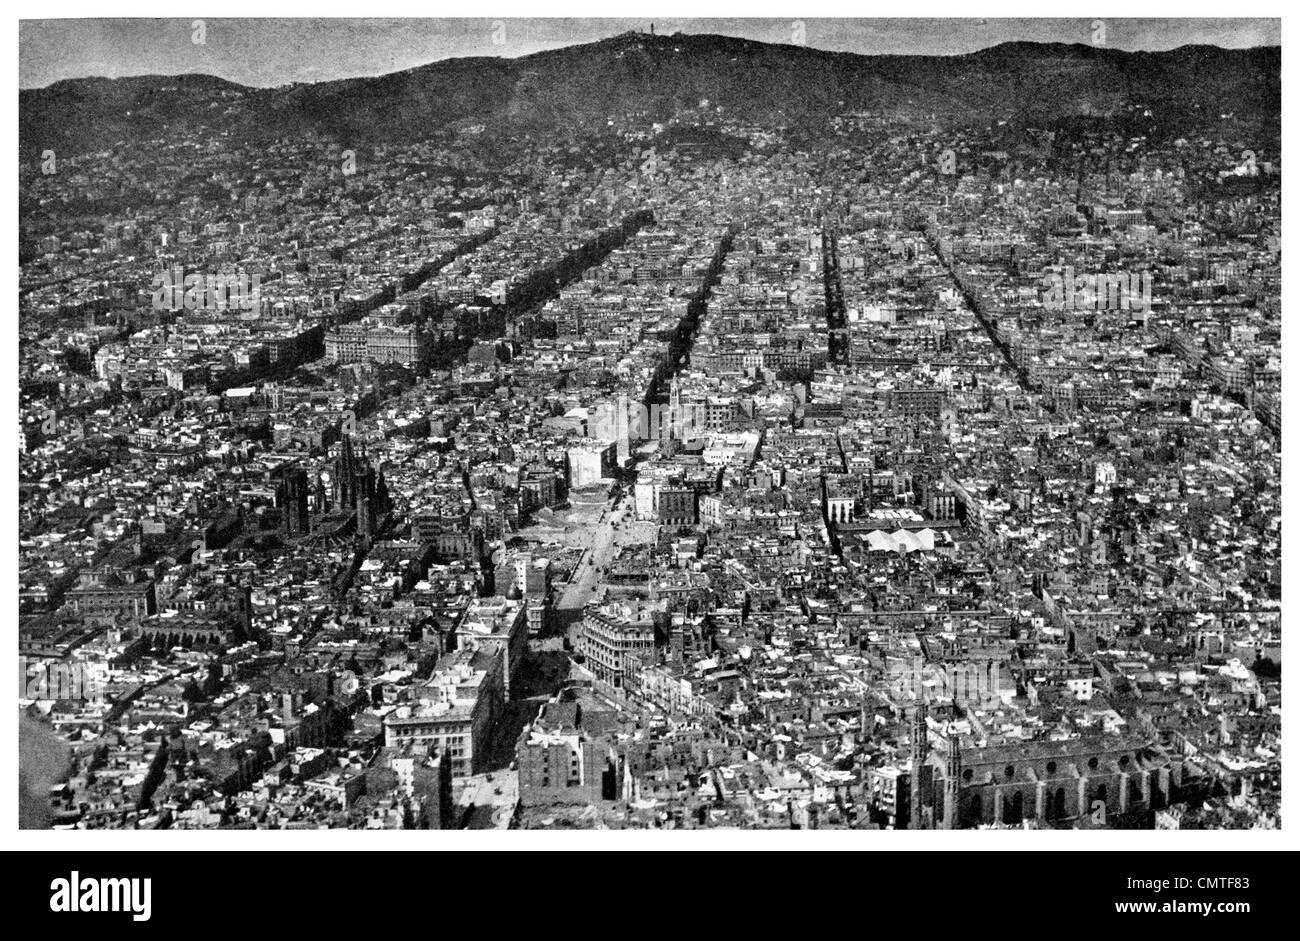 1925 Barcelona City aerial view - Stock Image